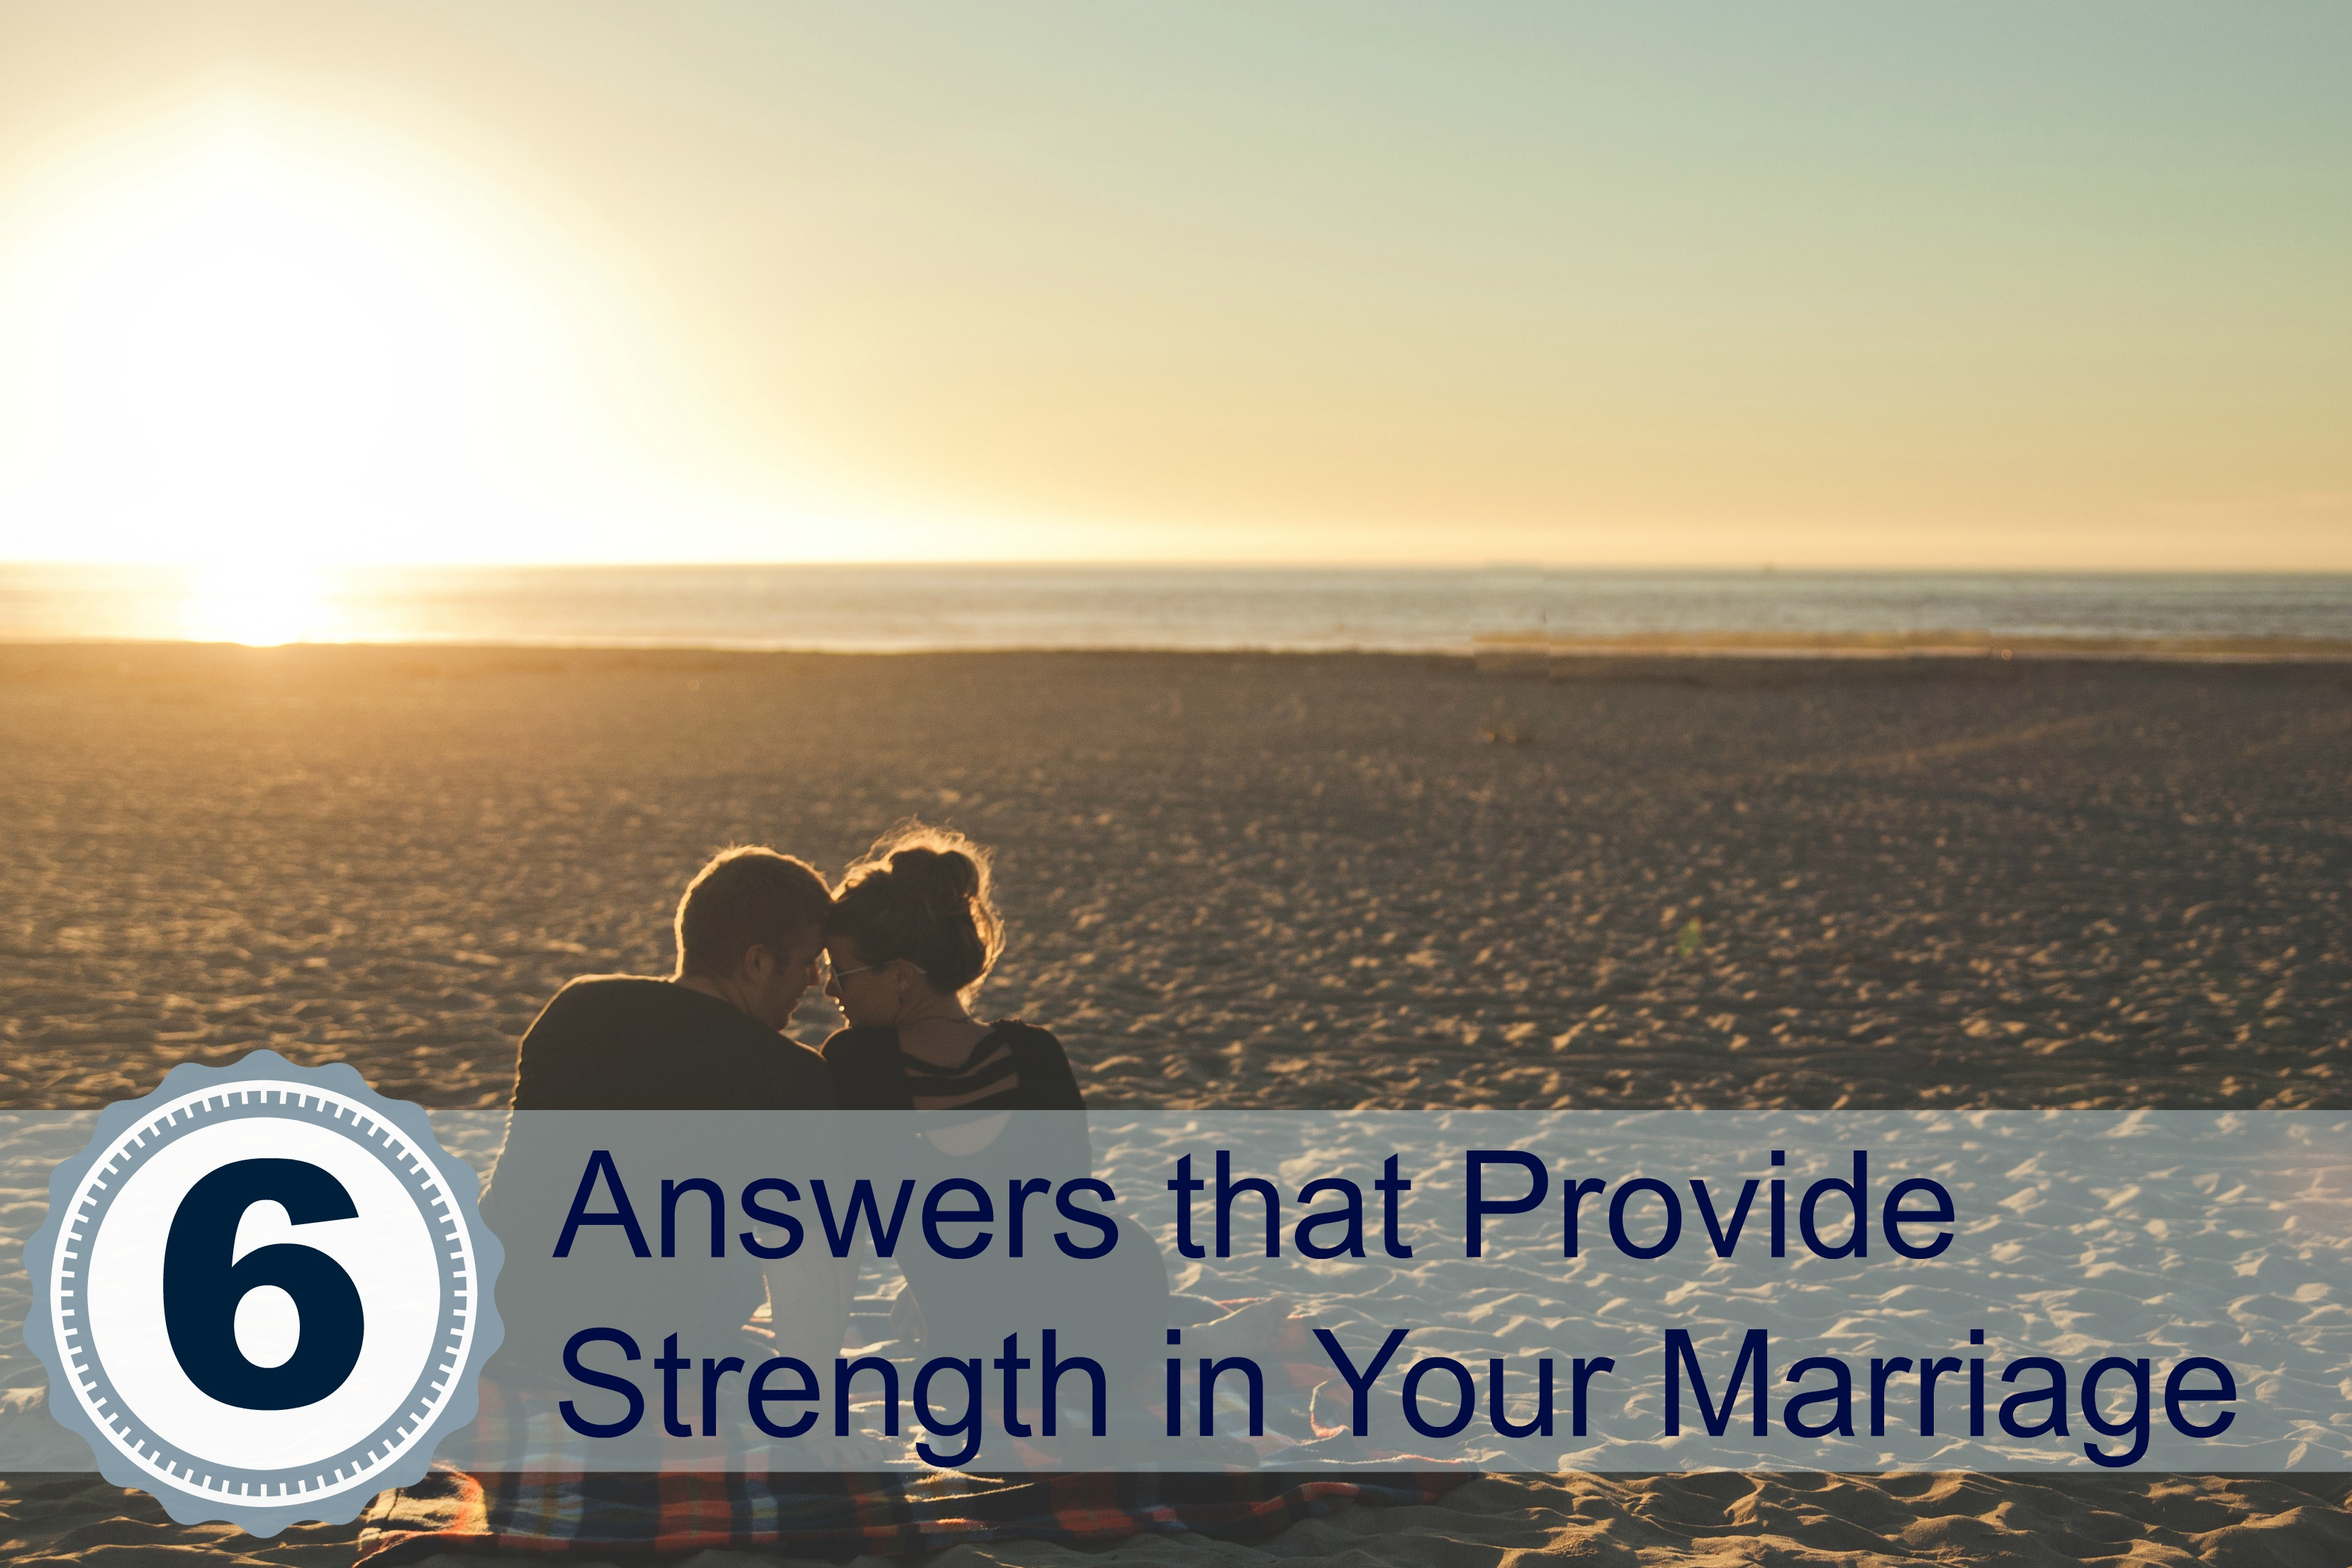 6 Answers that Provide Strength in Marriage